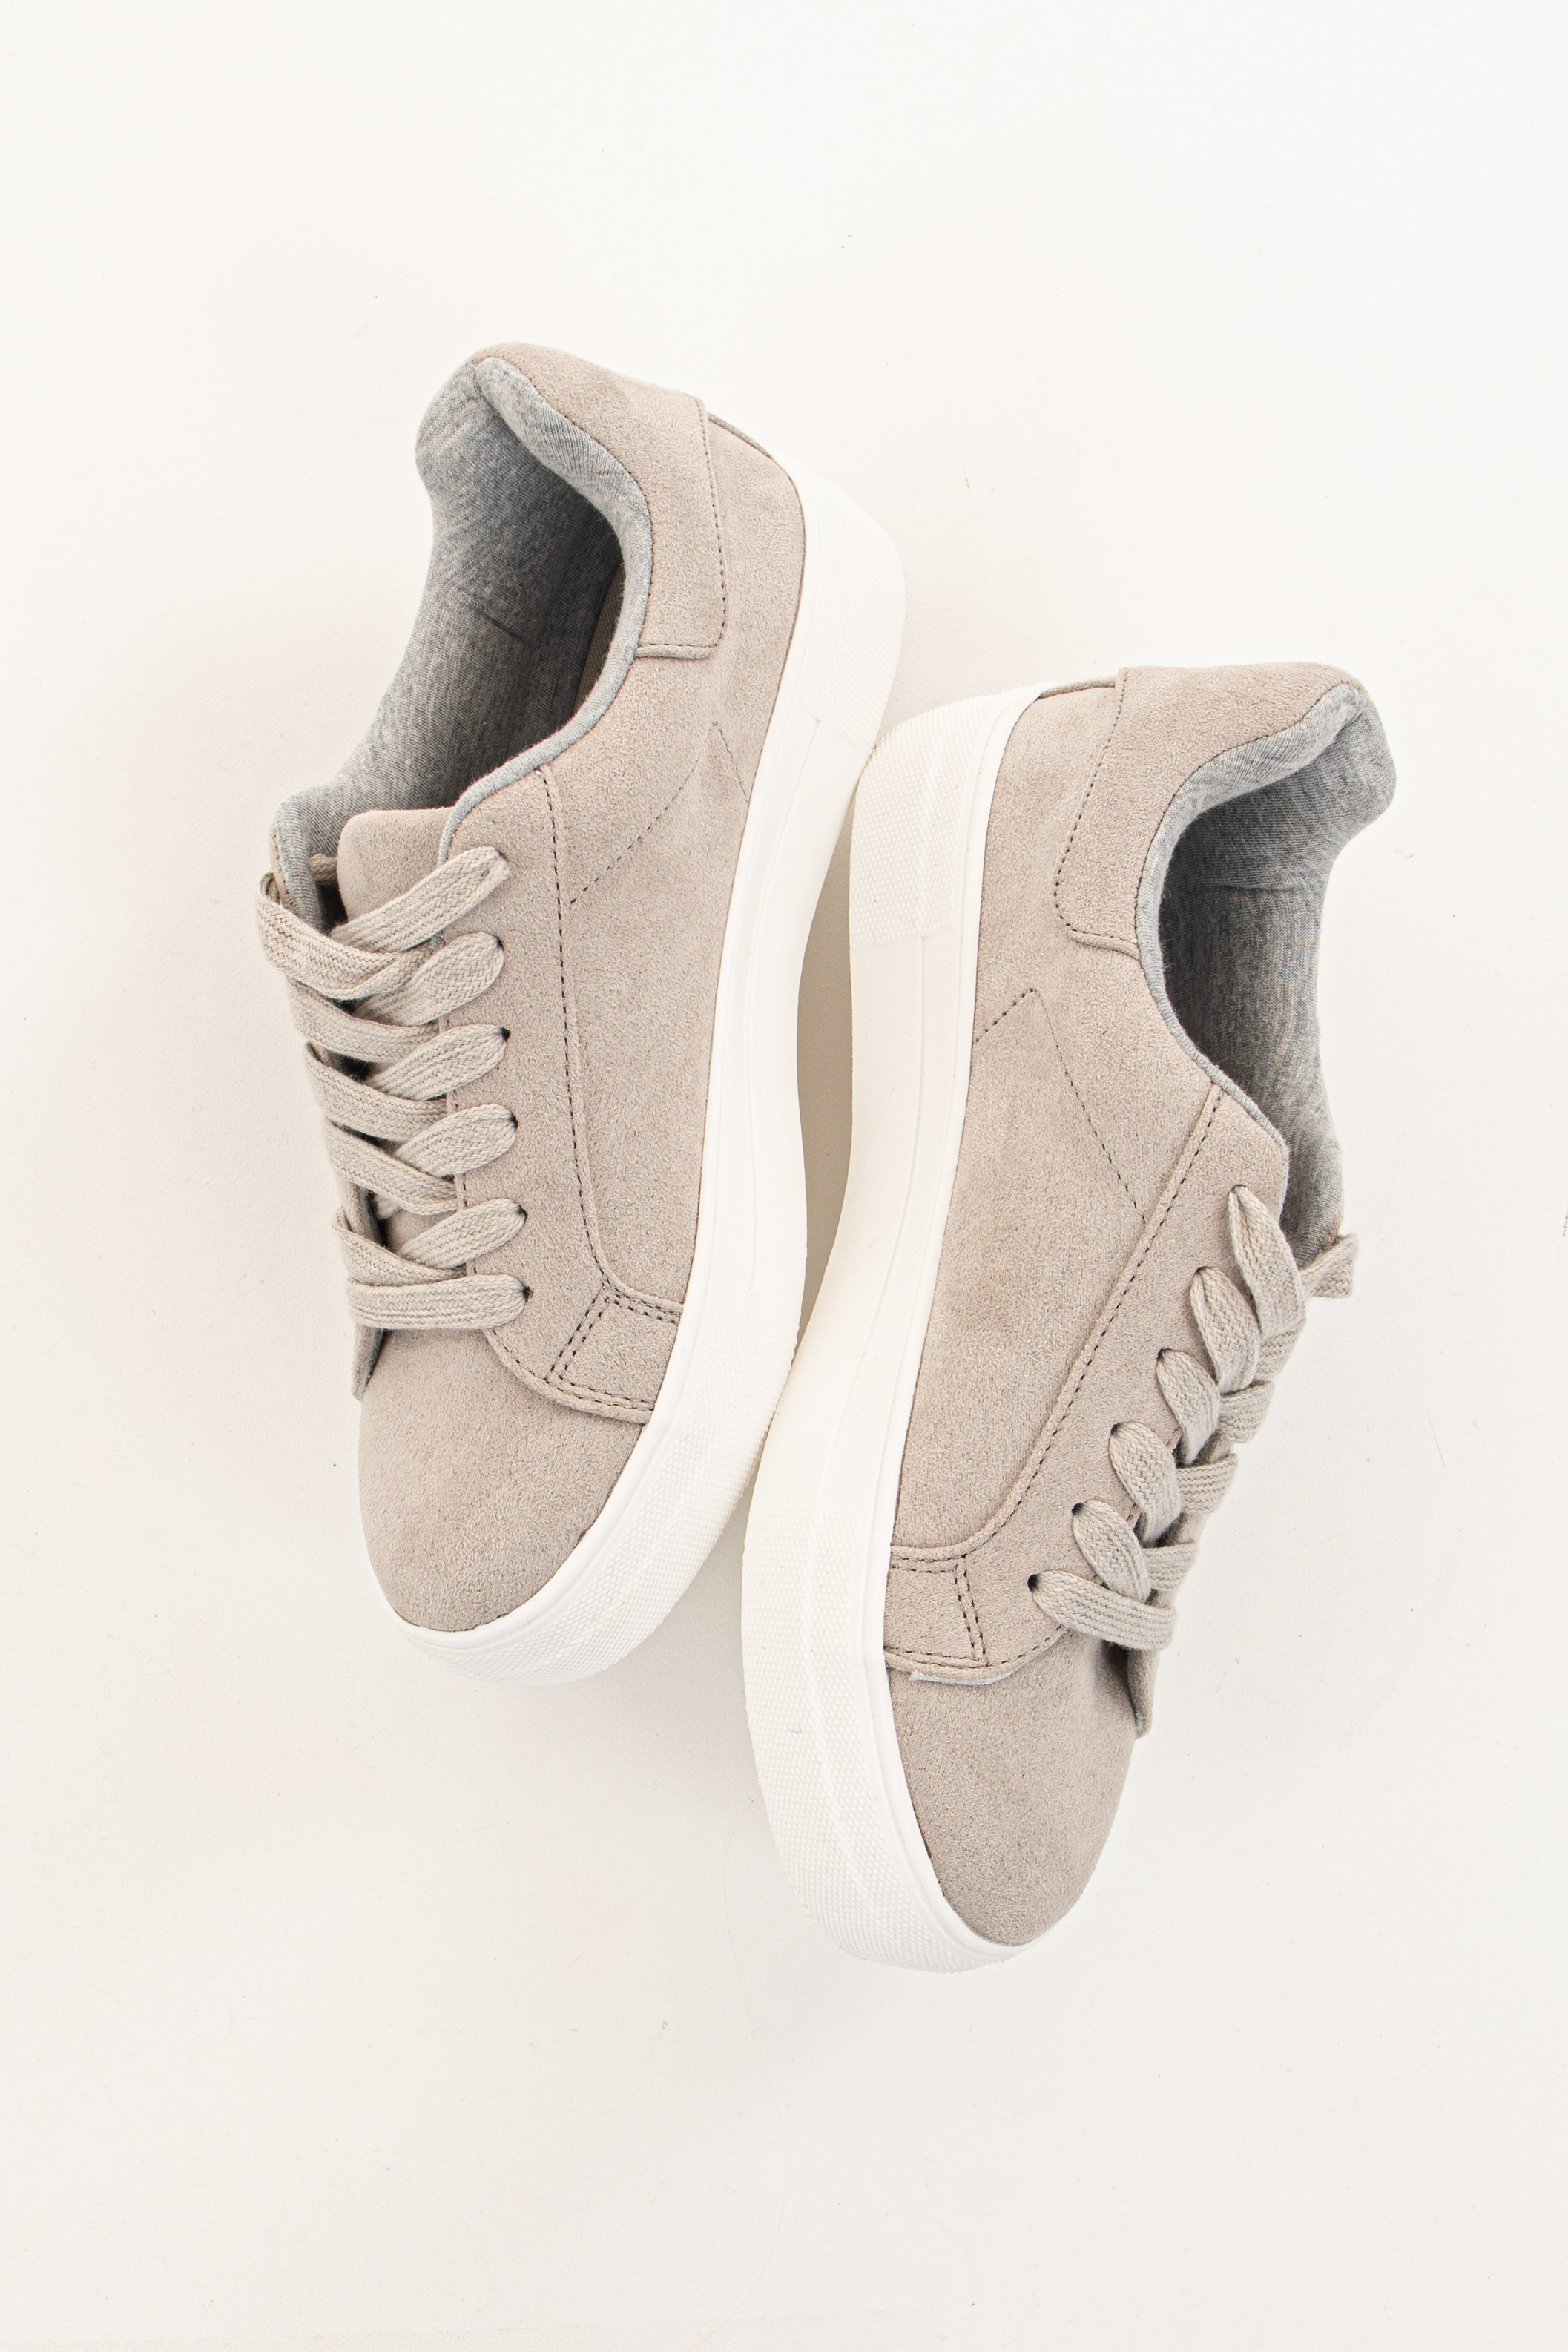 Dove Grey Faux Suede Lace Up Sneakers with Rubber Soles